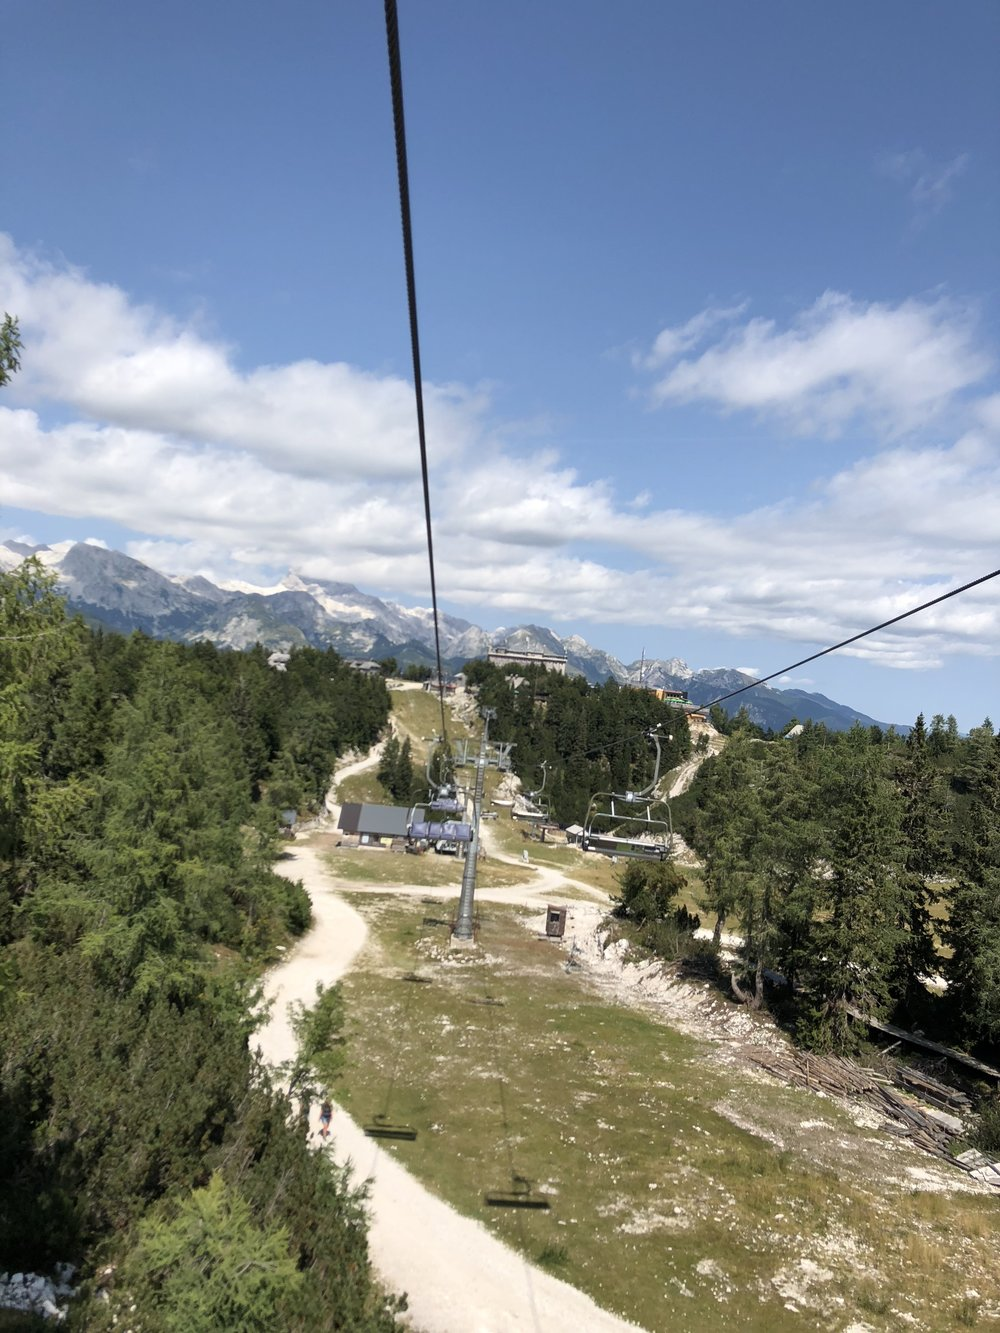 Cable car at Vogel Ski Resort